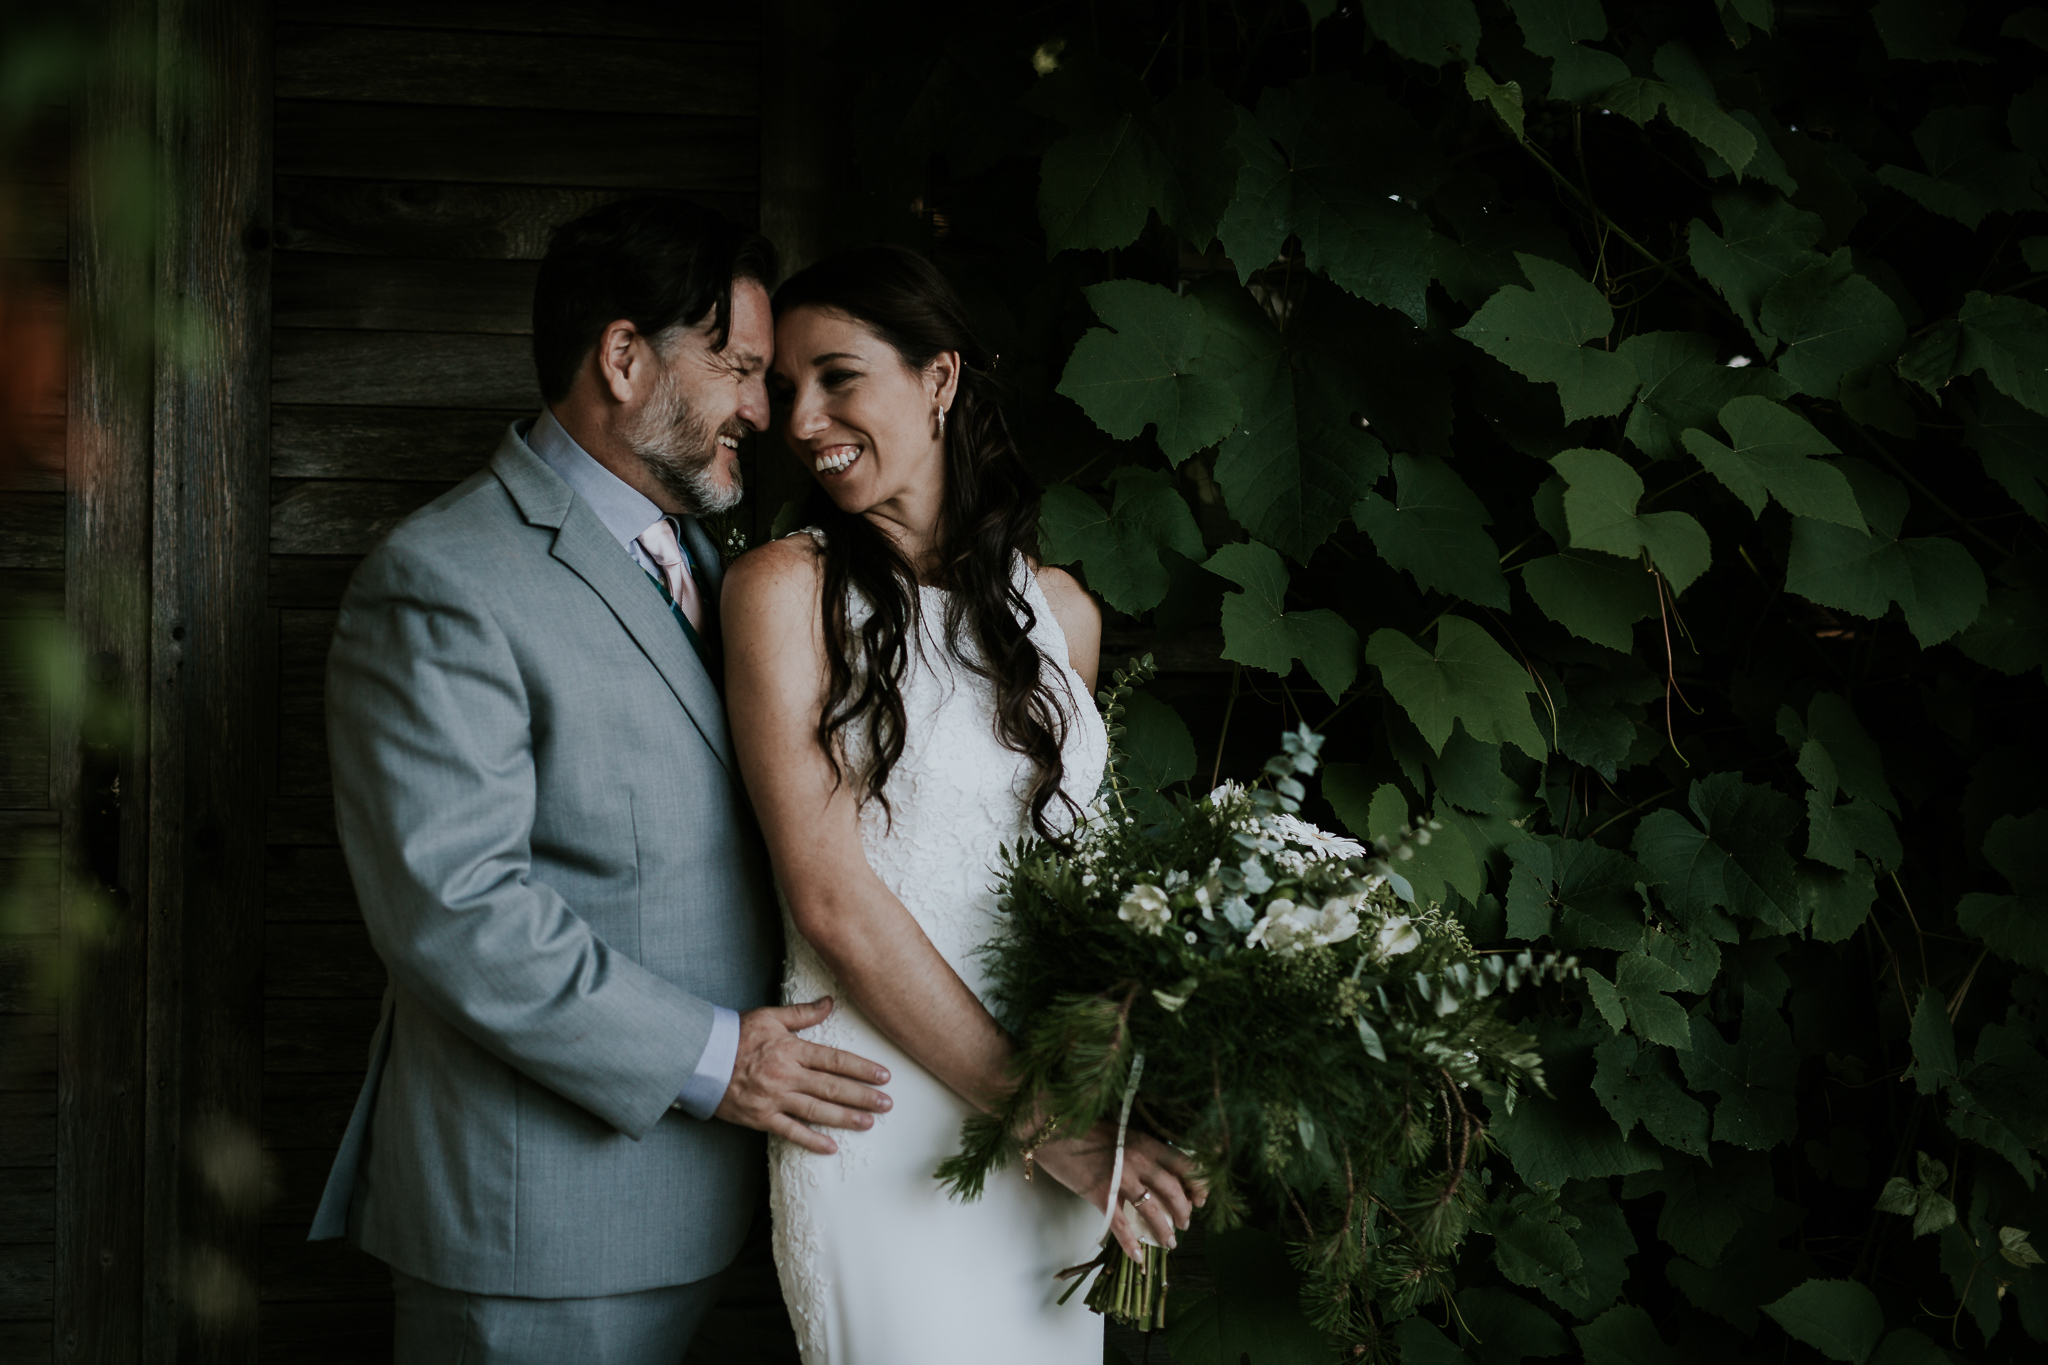 Bride and groom cuddling under climbing vines at Starling Lane winery wedding